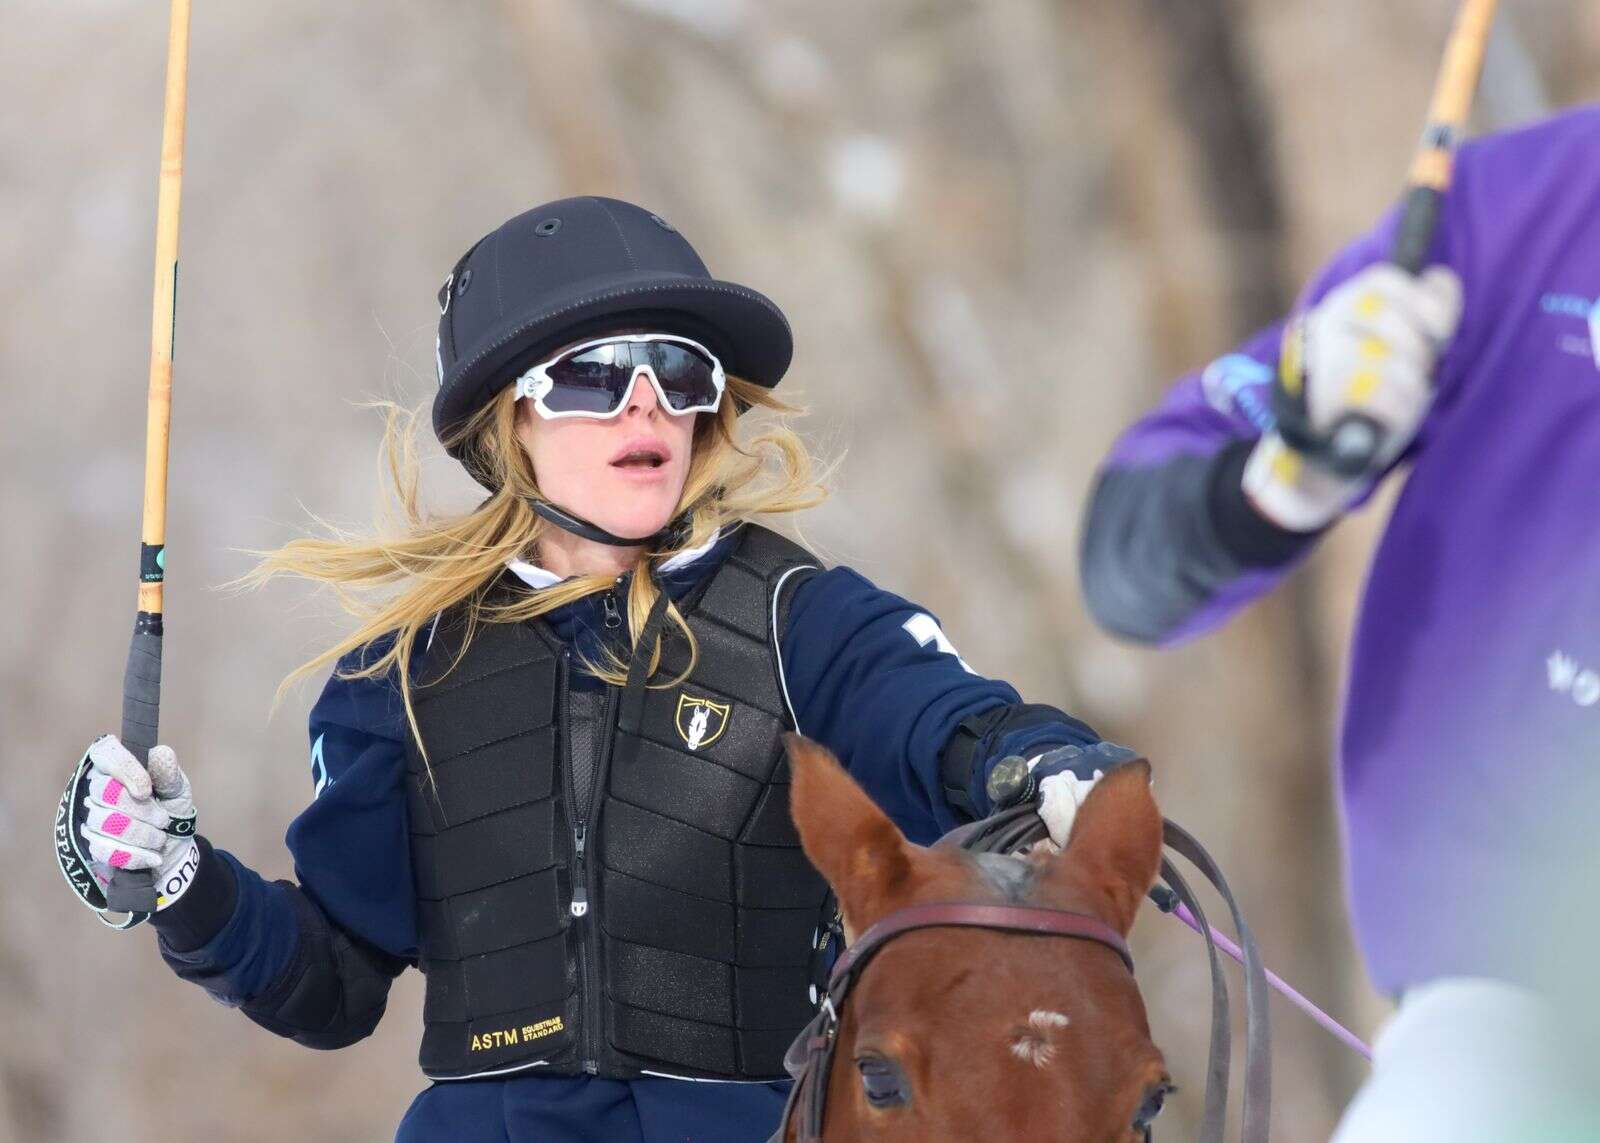 Sarah Siegel-Magness rides in the World Snow Polo Championship on Sunday, Dec. 20, 2020, at Rio Grande Park in Aspen. Photo by Austin Colbert/The Aspen Times.